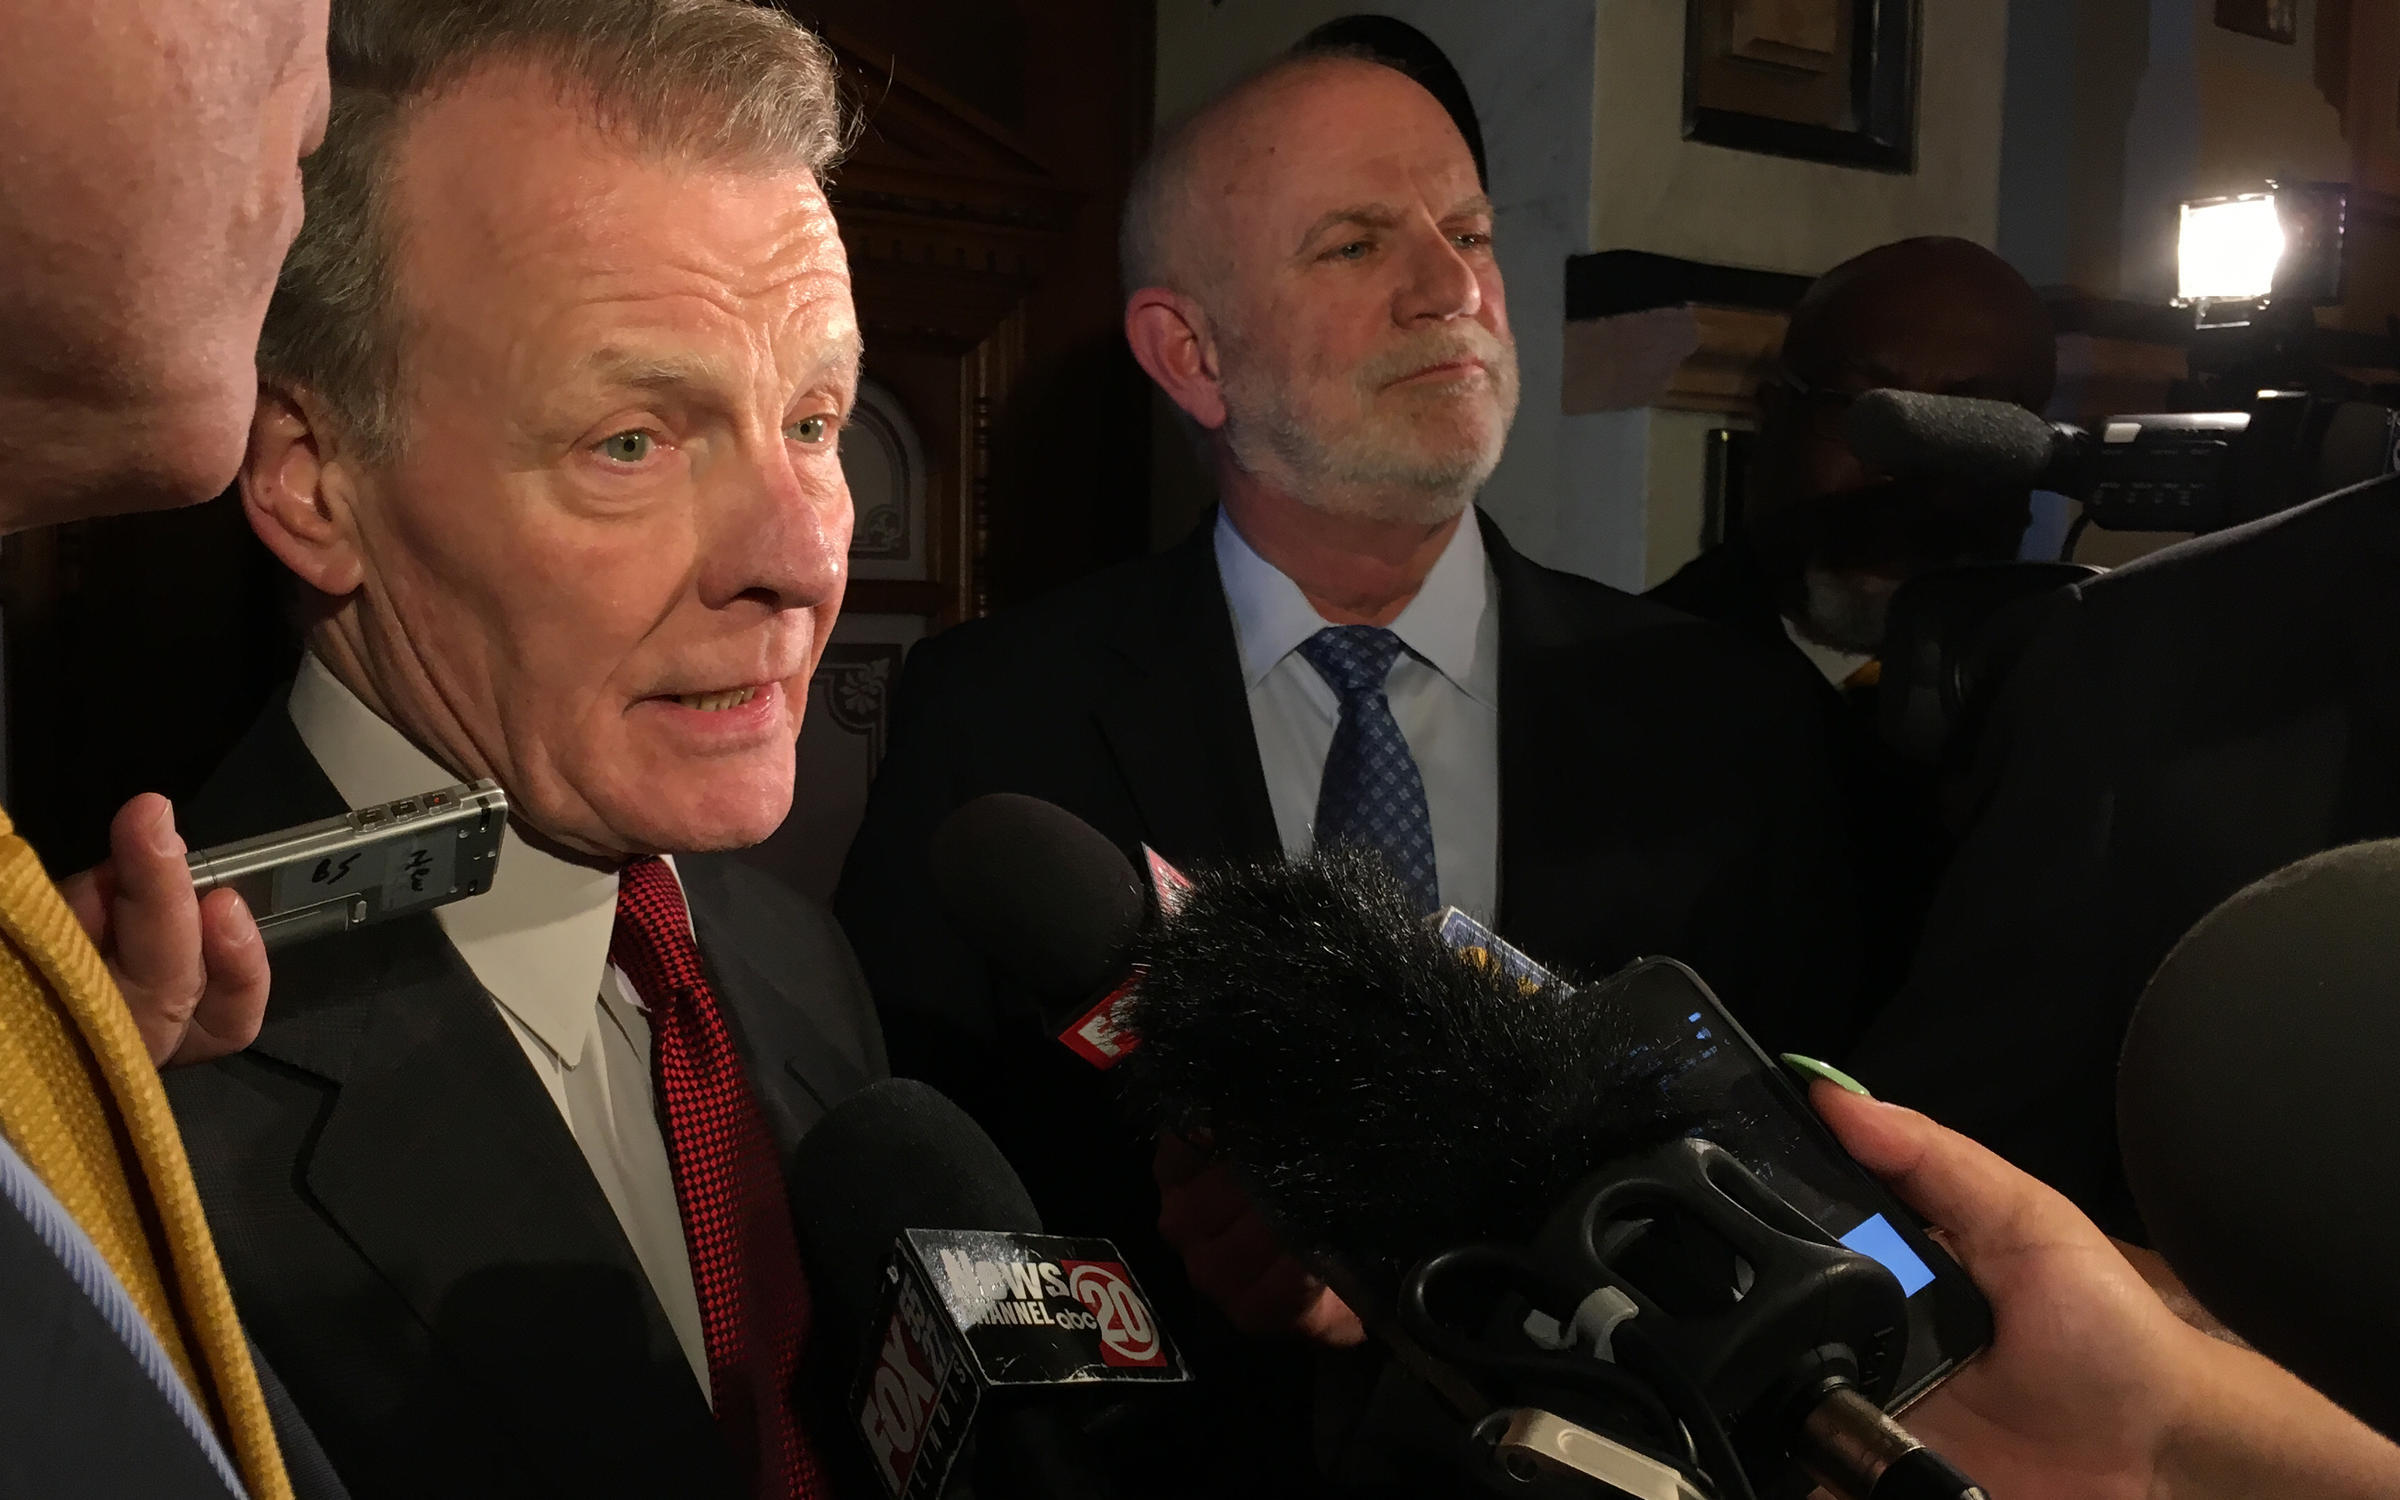 State Rep. Jerry Costello II issues response to Rauner's budget address